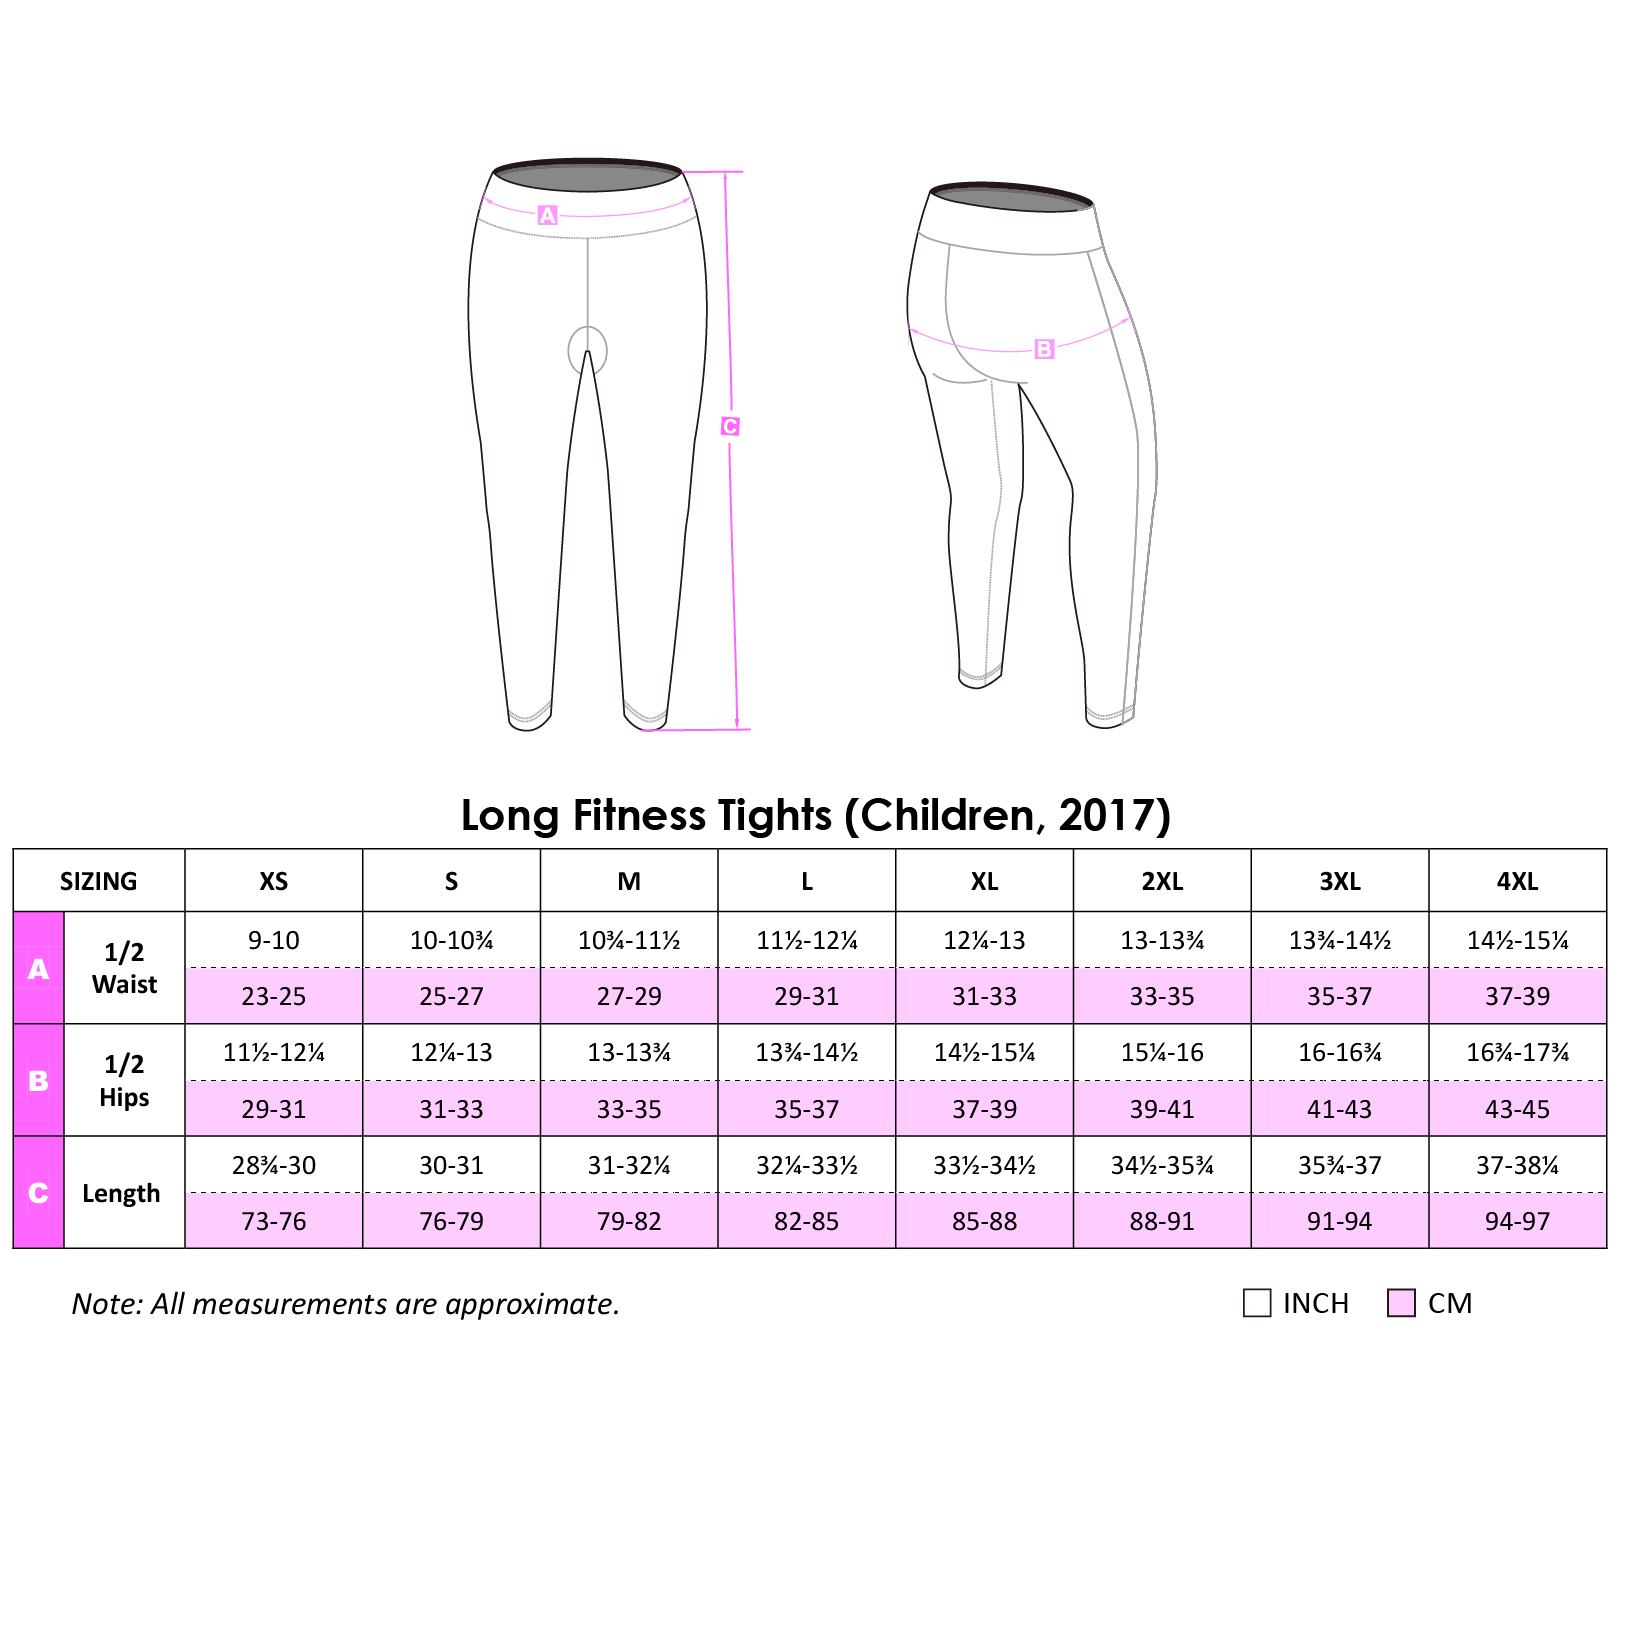 Long Fitness Tights 2017